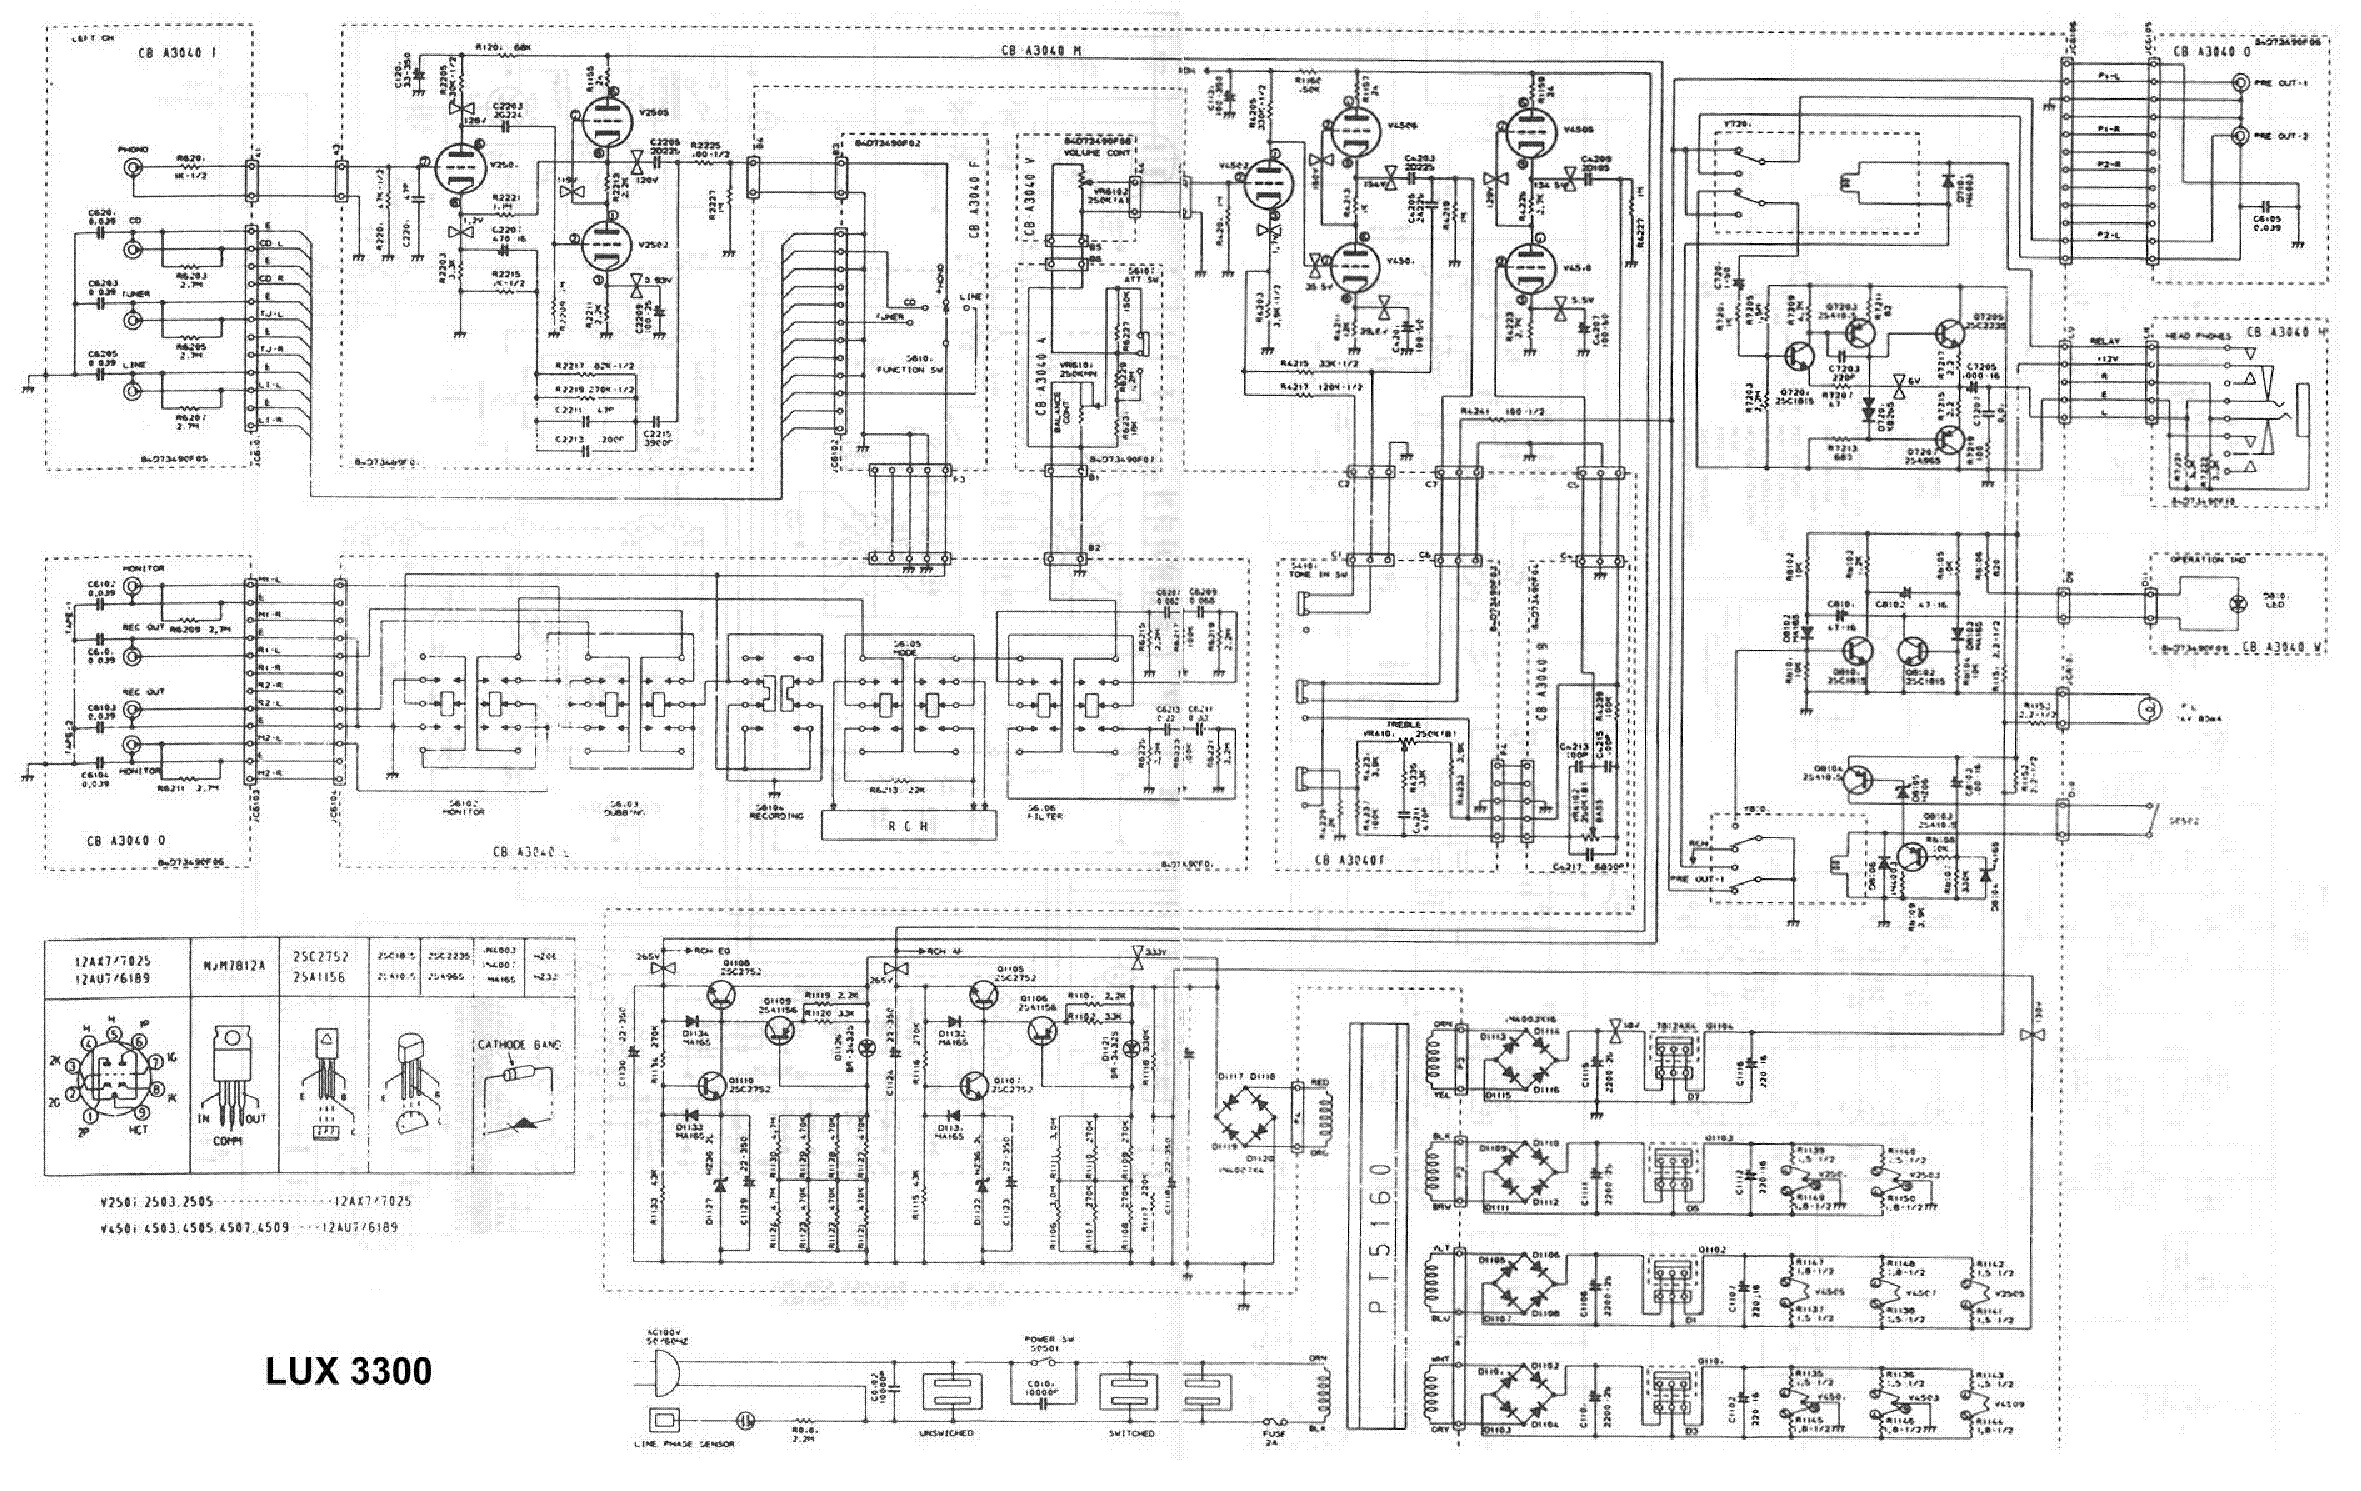 LUXMAN 3300 PREAMPLIFIER SCH Service Manual download